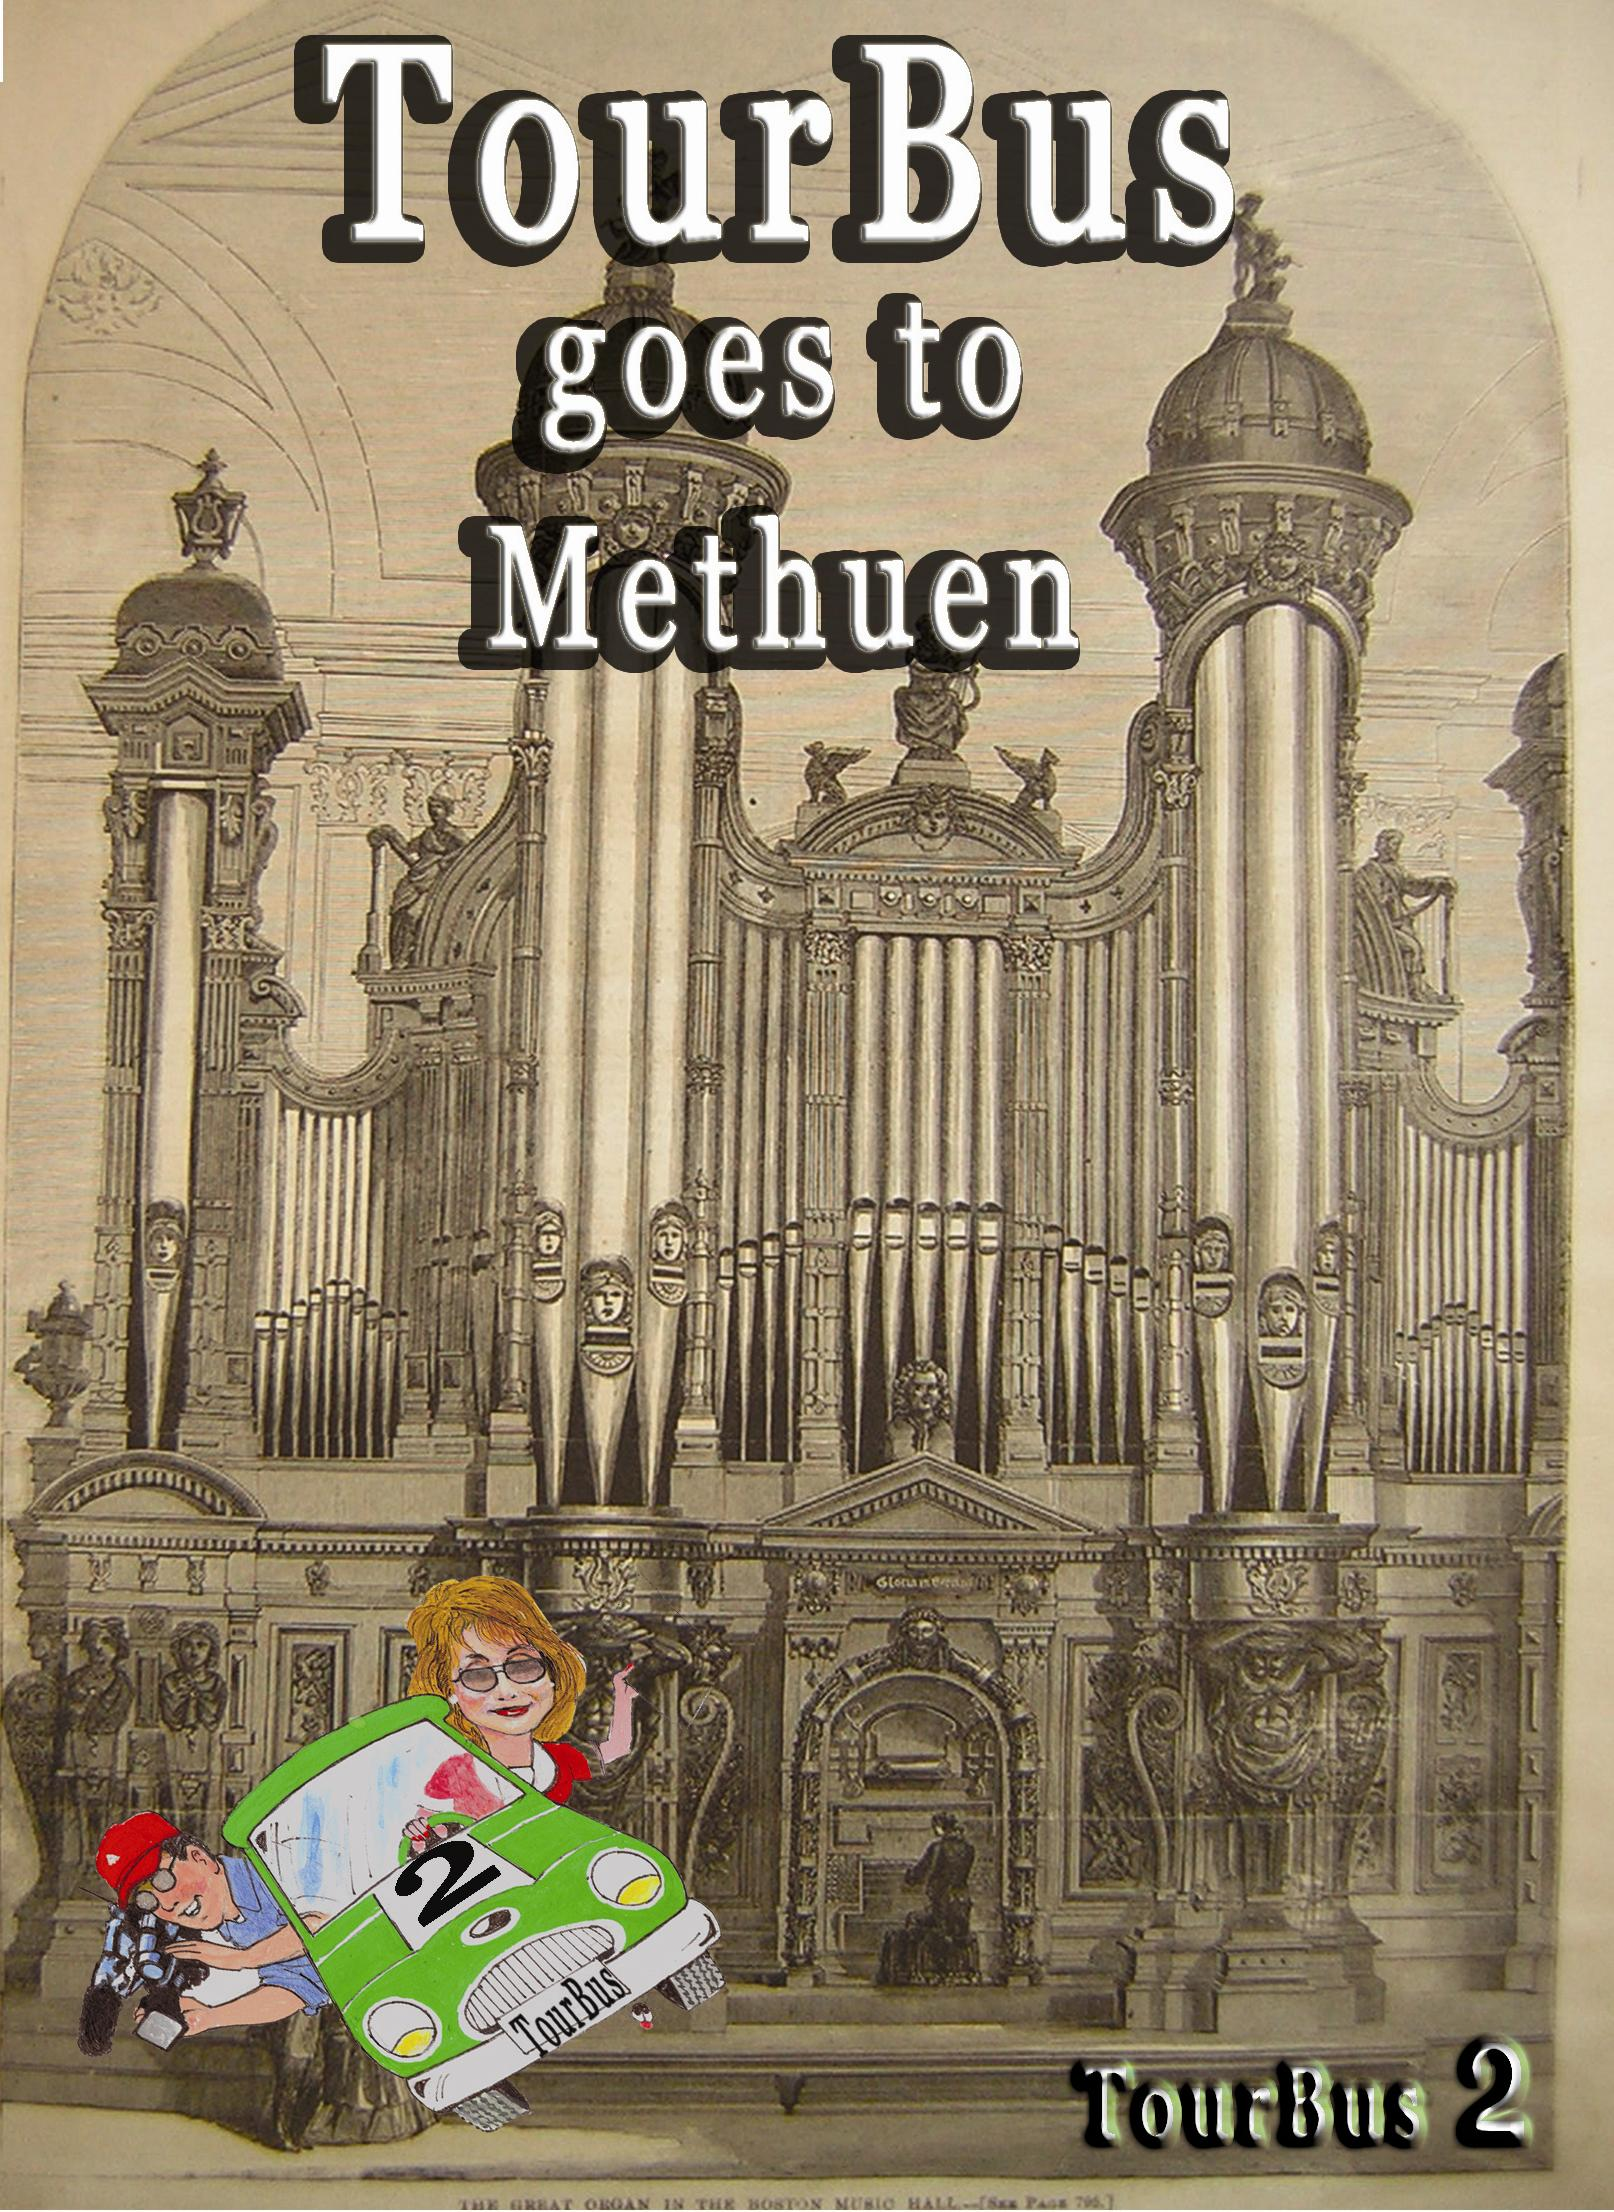 Methuen Music Hall Organ